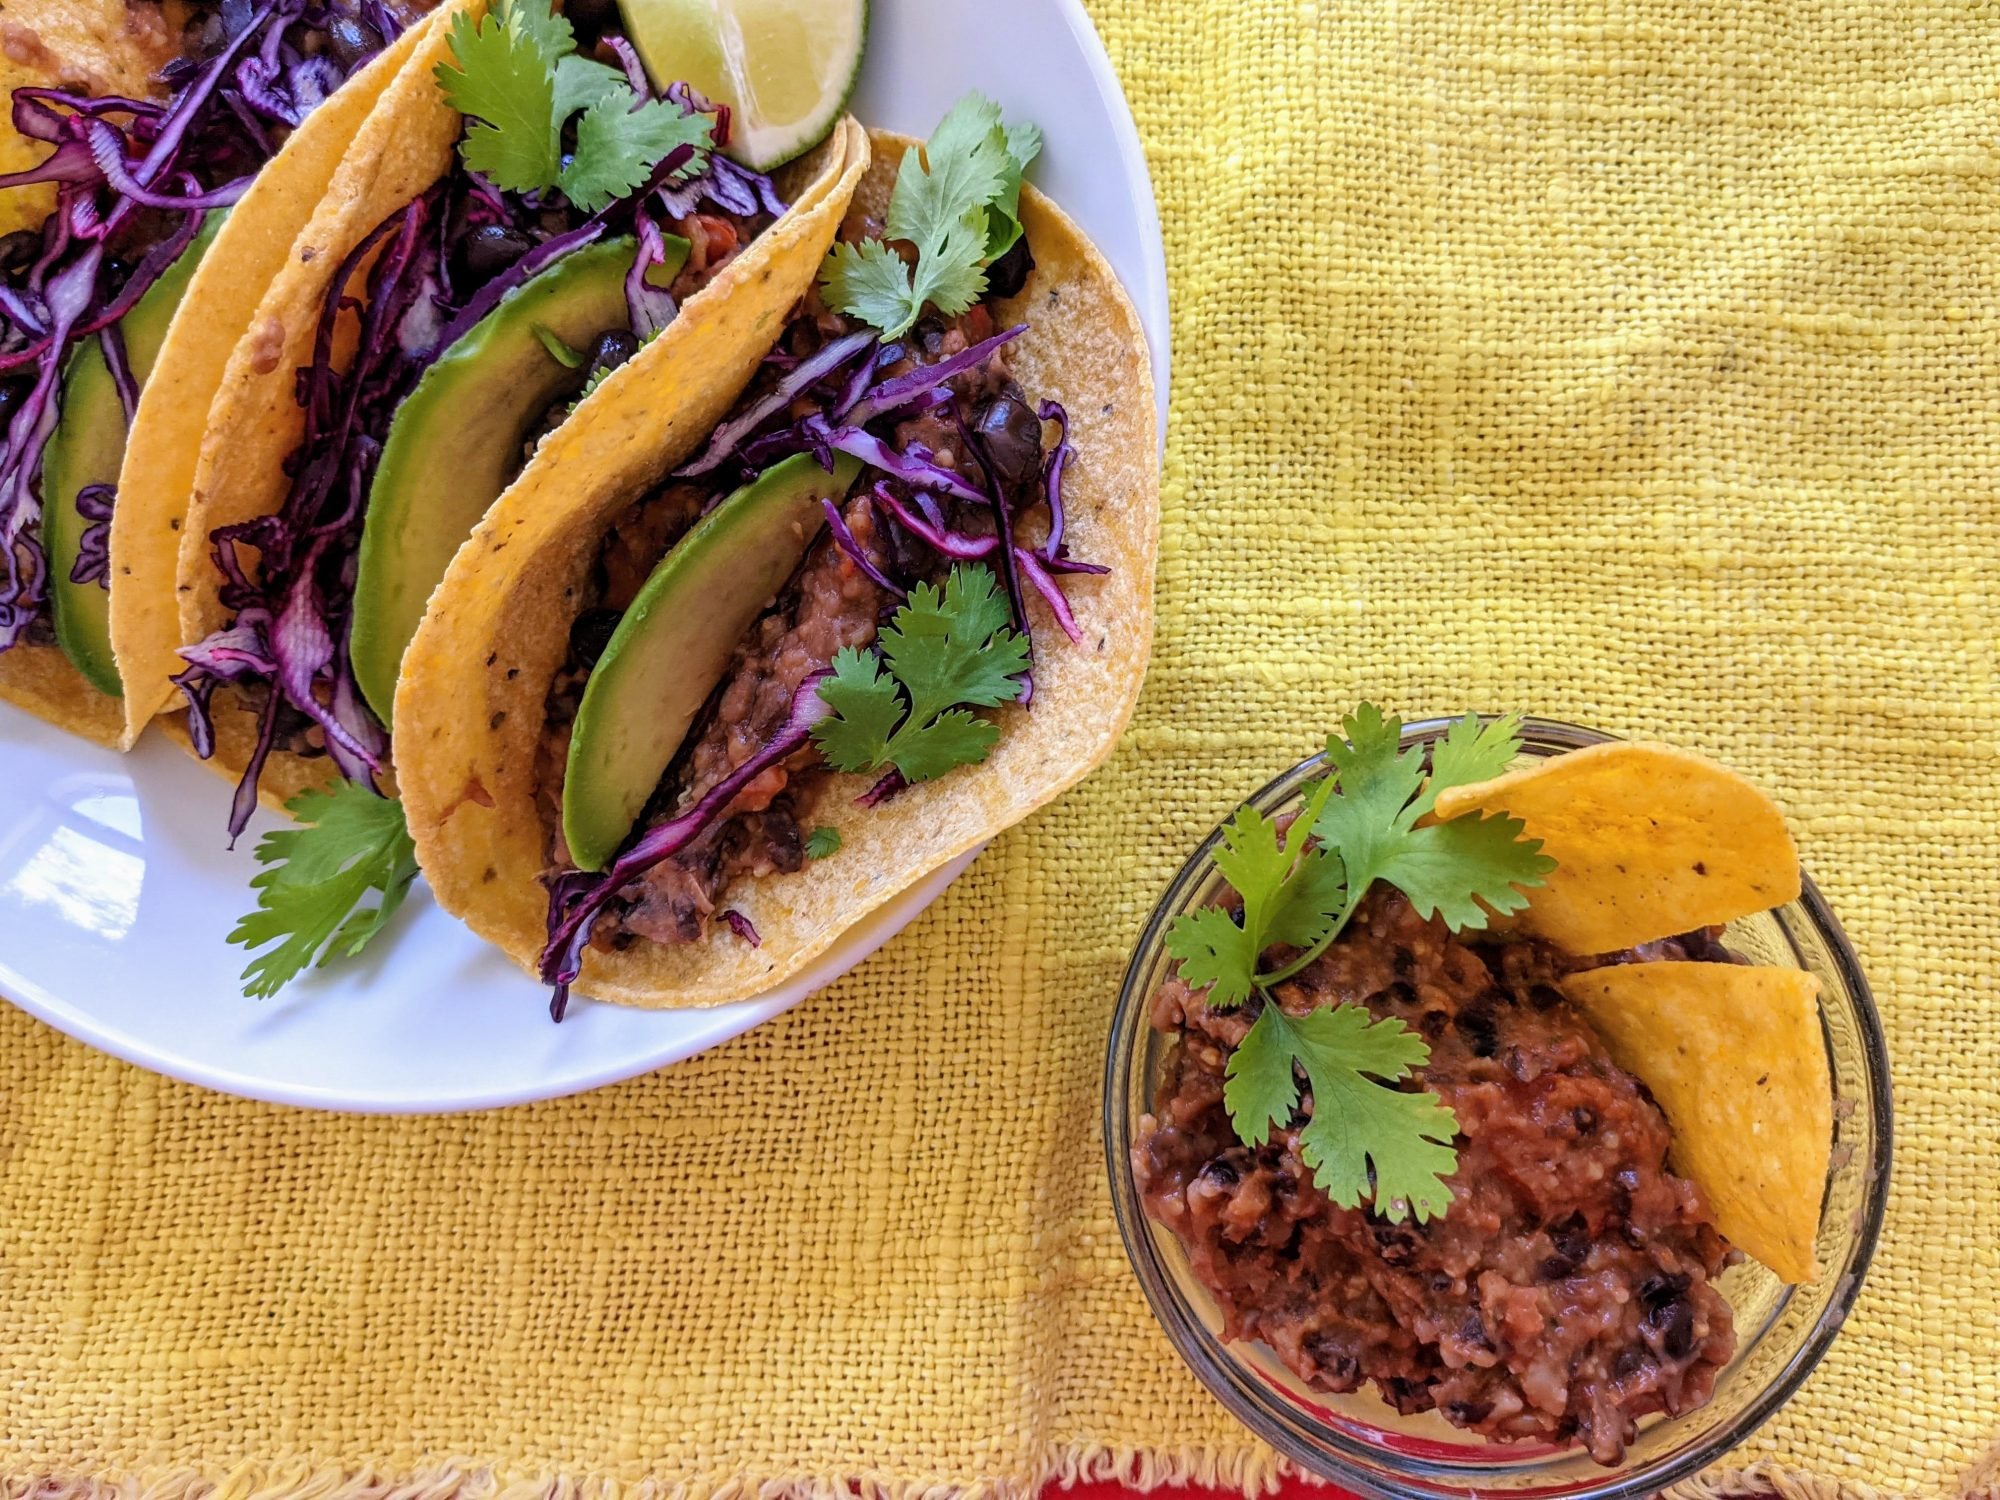 vegan bean taco filling, in a bowl with chips for dipping as well as in tacos on a platter.